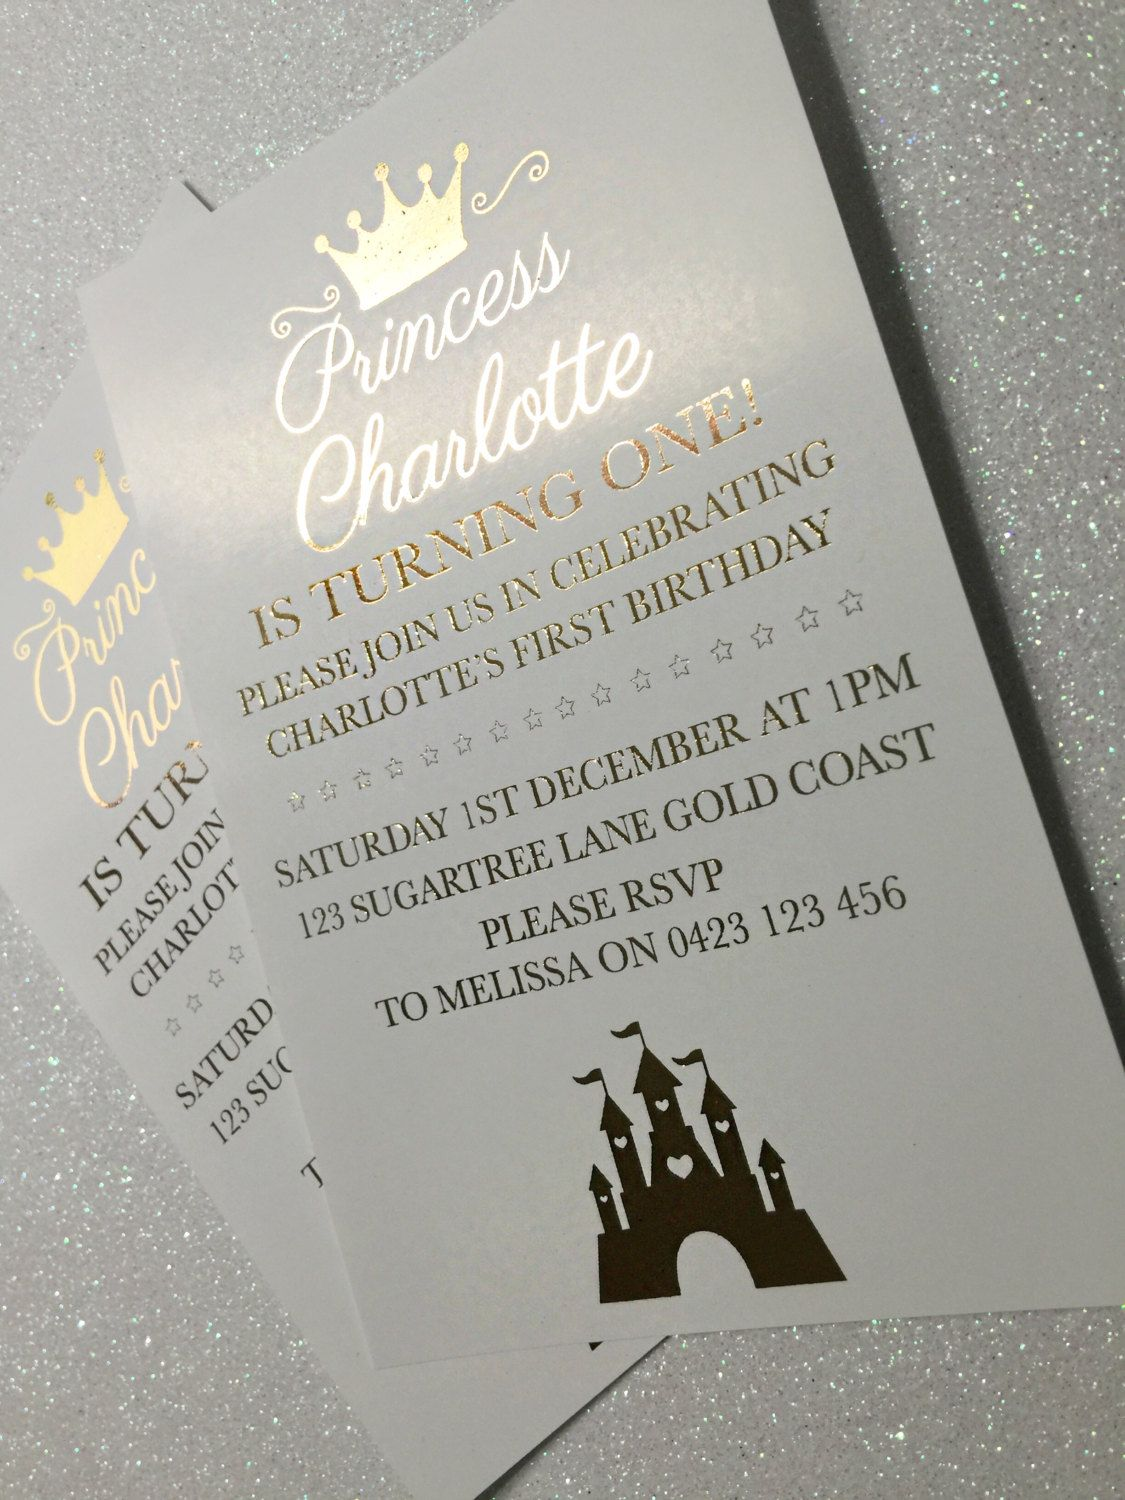 First birthday invitations 1st birthday gold foil invitations first birthday invitations 1st birthday gold foil invitations christening invitations princess invitation monicamarmolfo Image collections